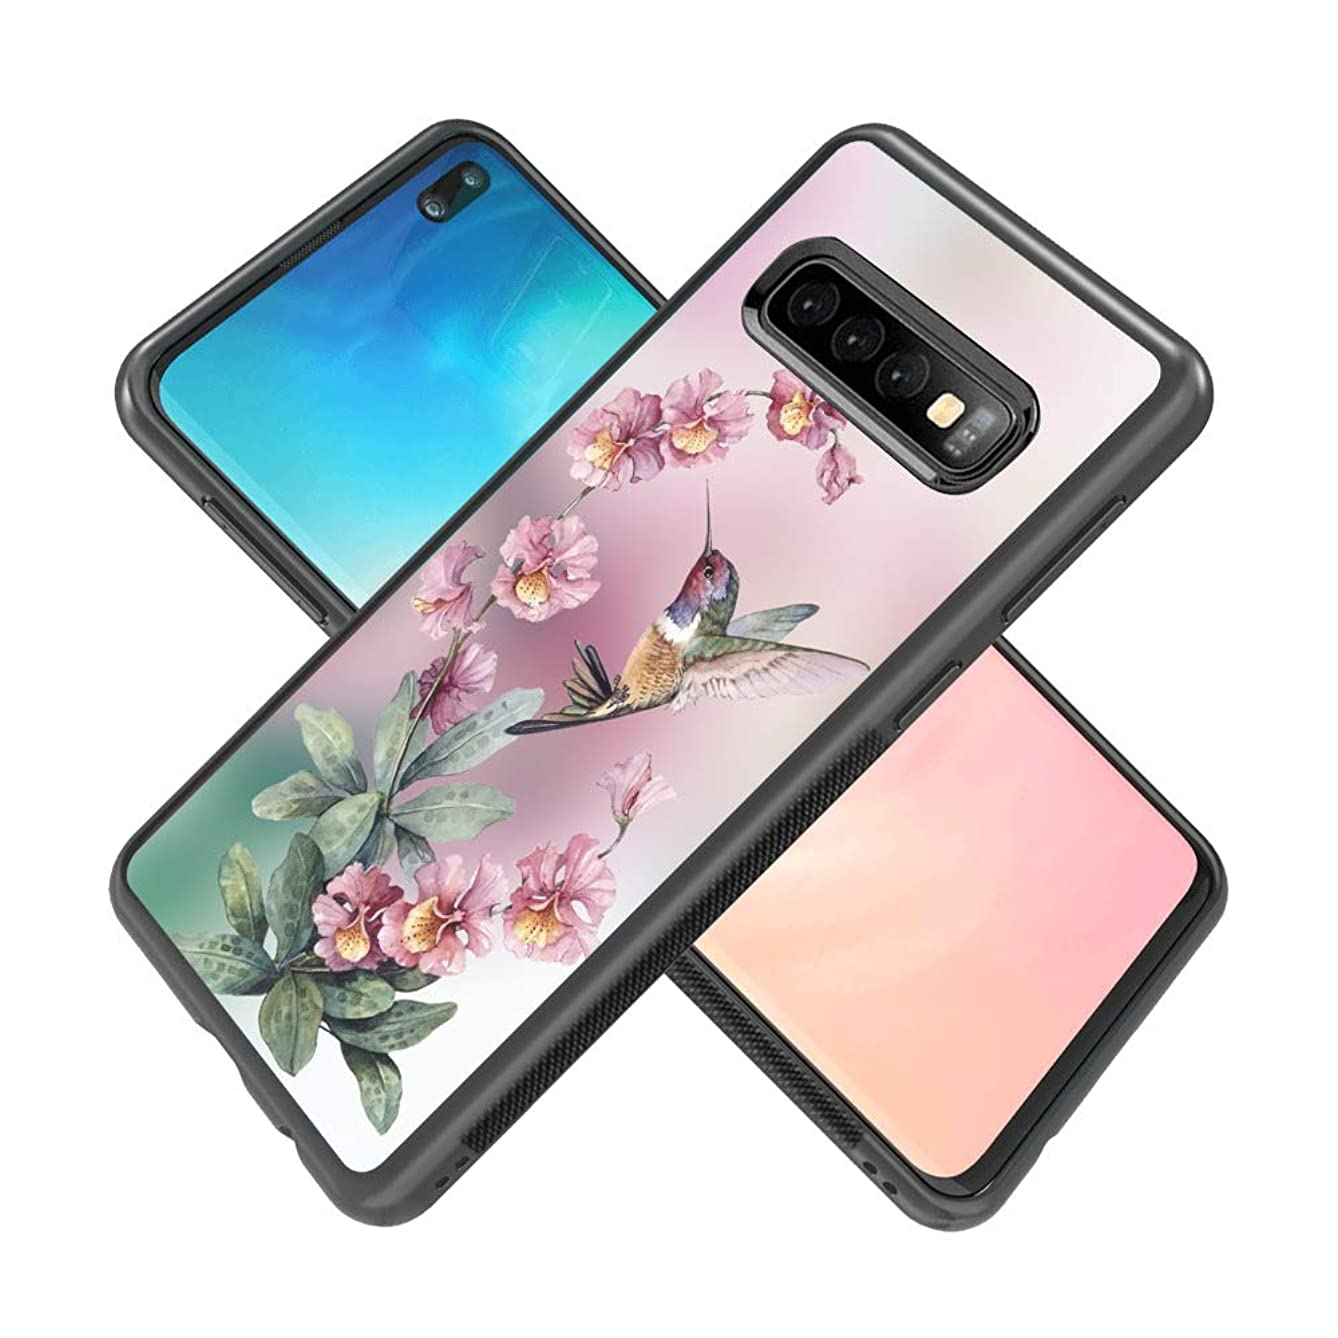 Samsung Galaxy S10 Plus Case, Beautiful Hummingbird Drawing Soft Black TPU Rubber and PC Anti-Slip Grip Cover Case, Shockproof Defend Protective Phone Case for Samsung Galaxy S10 Plus